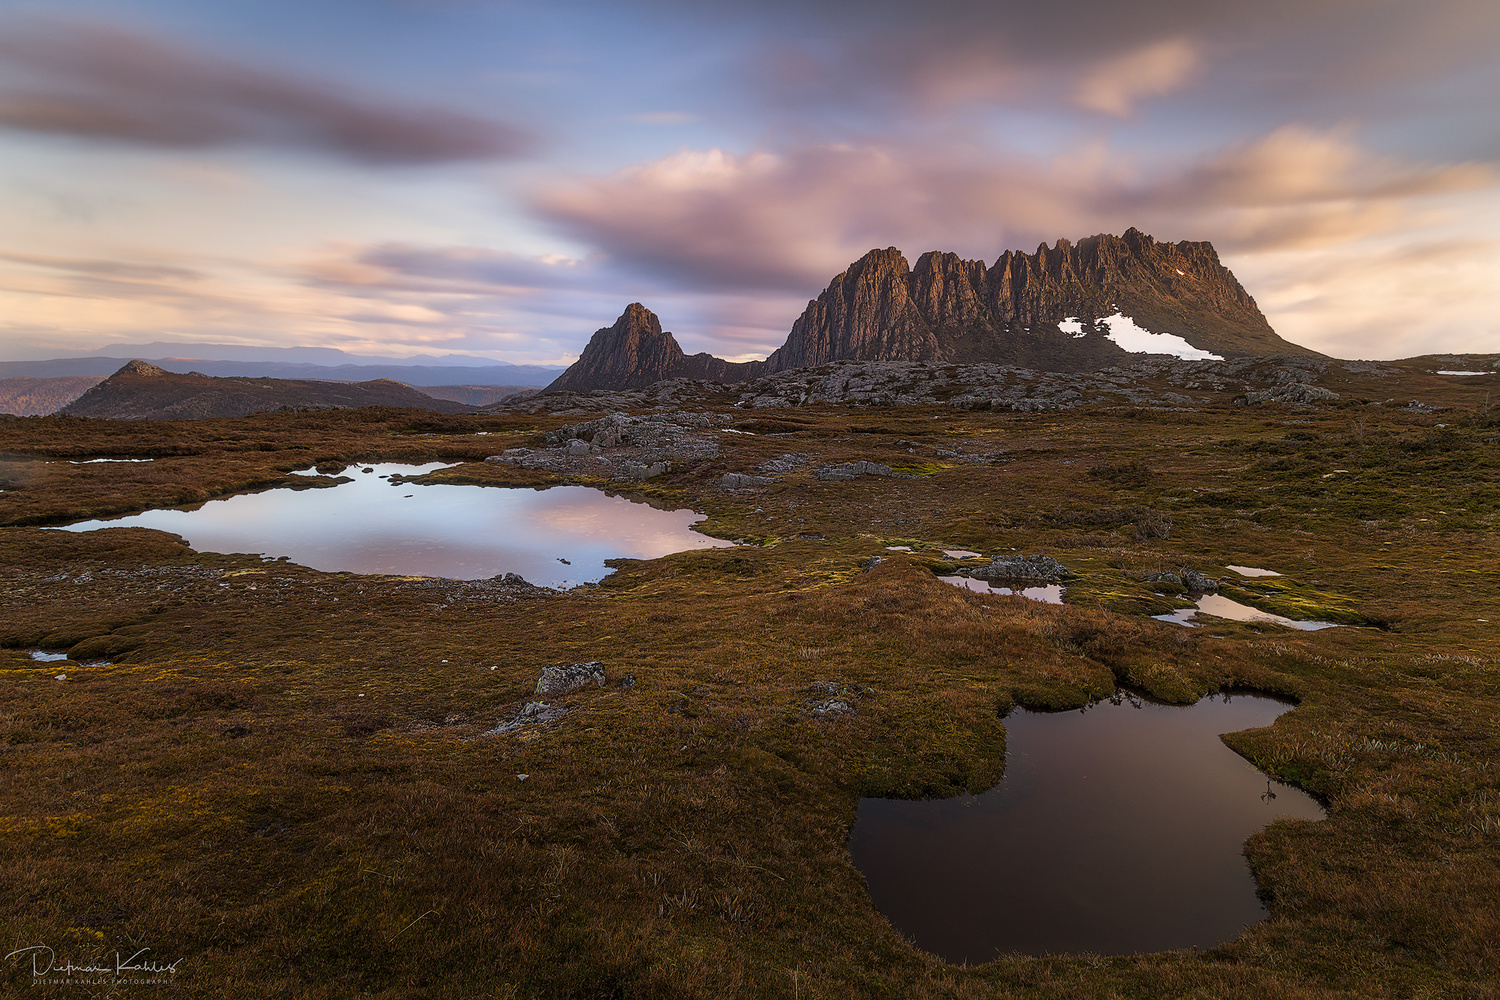 Late afternoon on the plateau by Dietmar Kahles